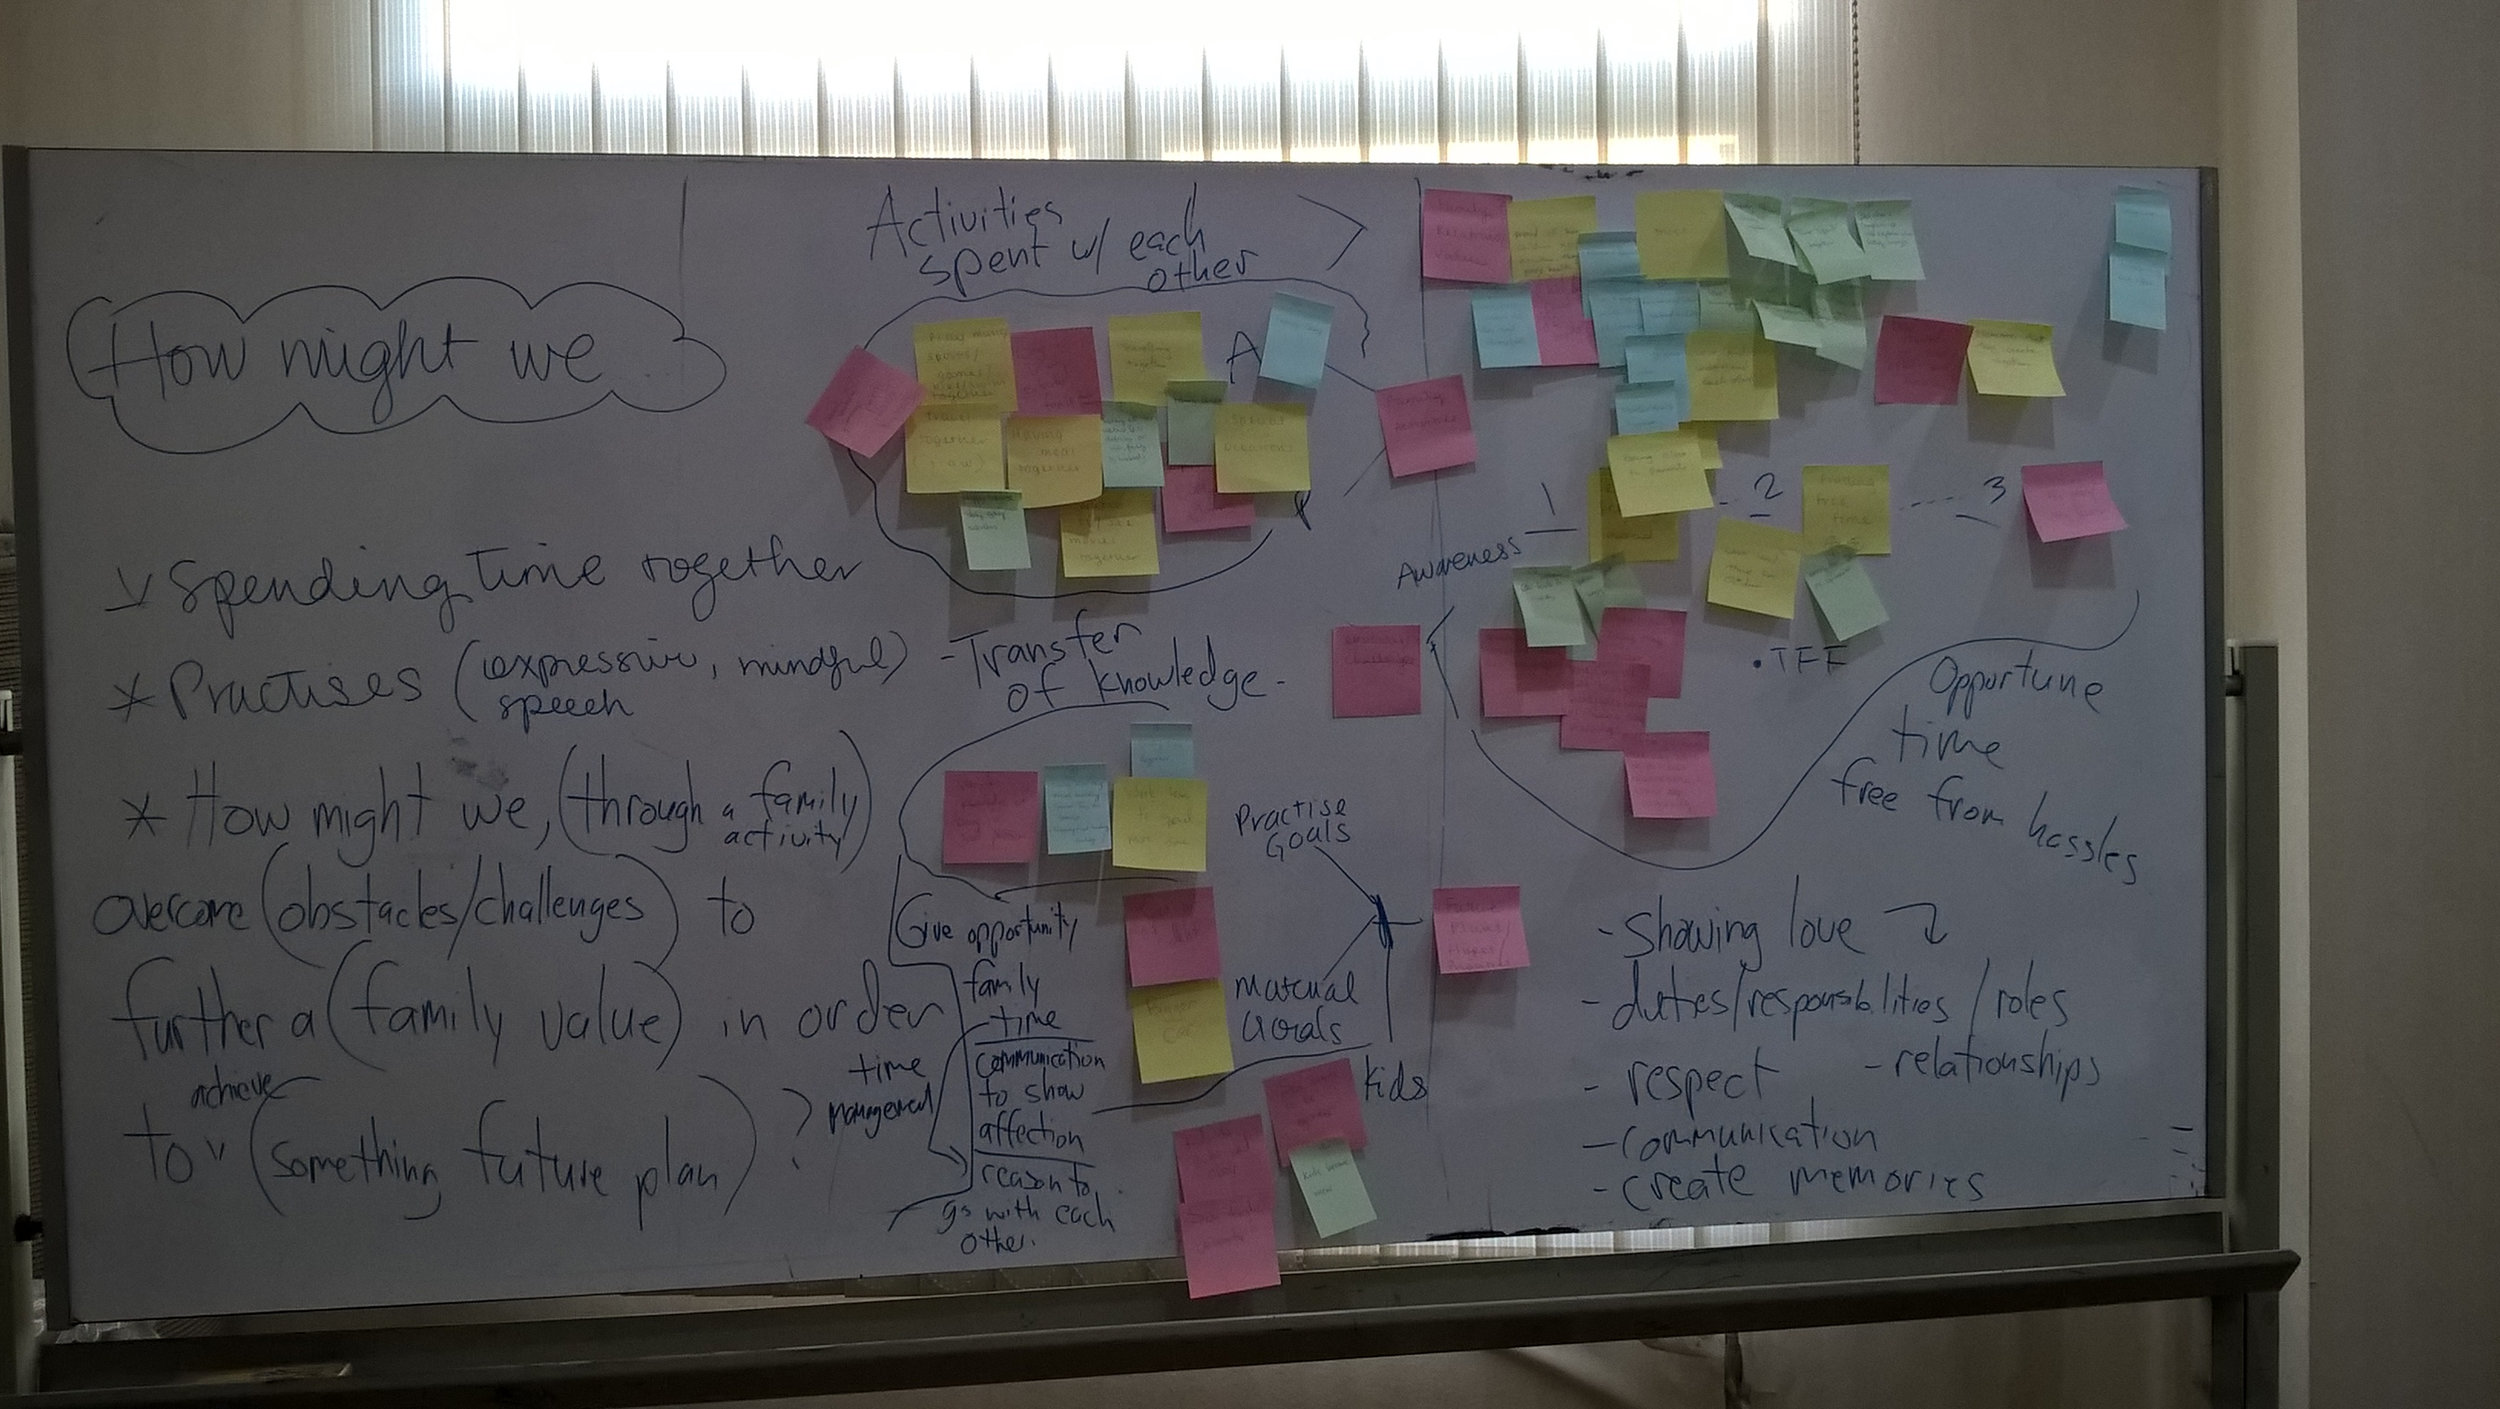 The ideation process: Many ideas were identified on Post It notes and the white board